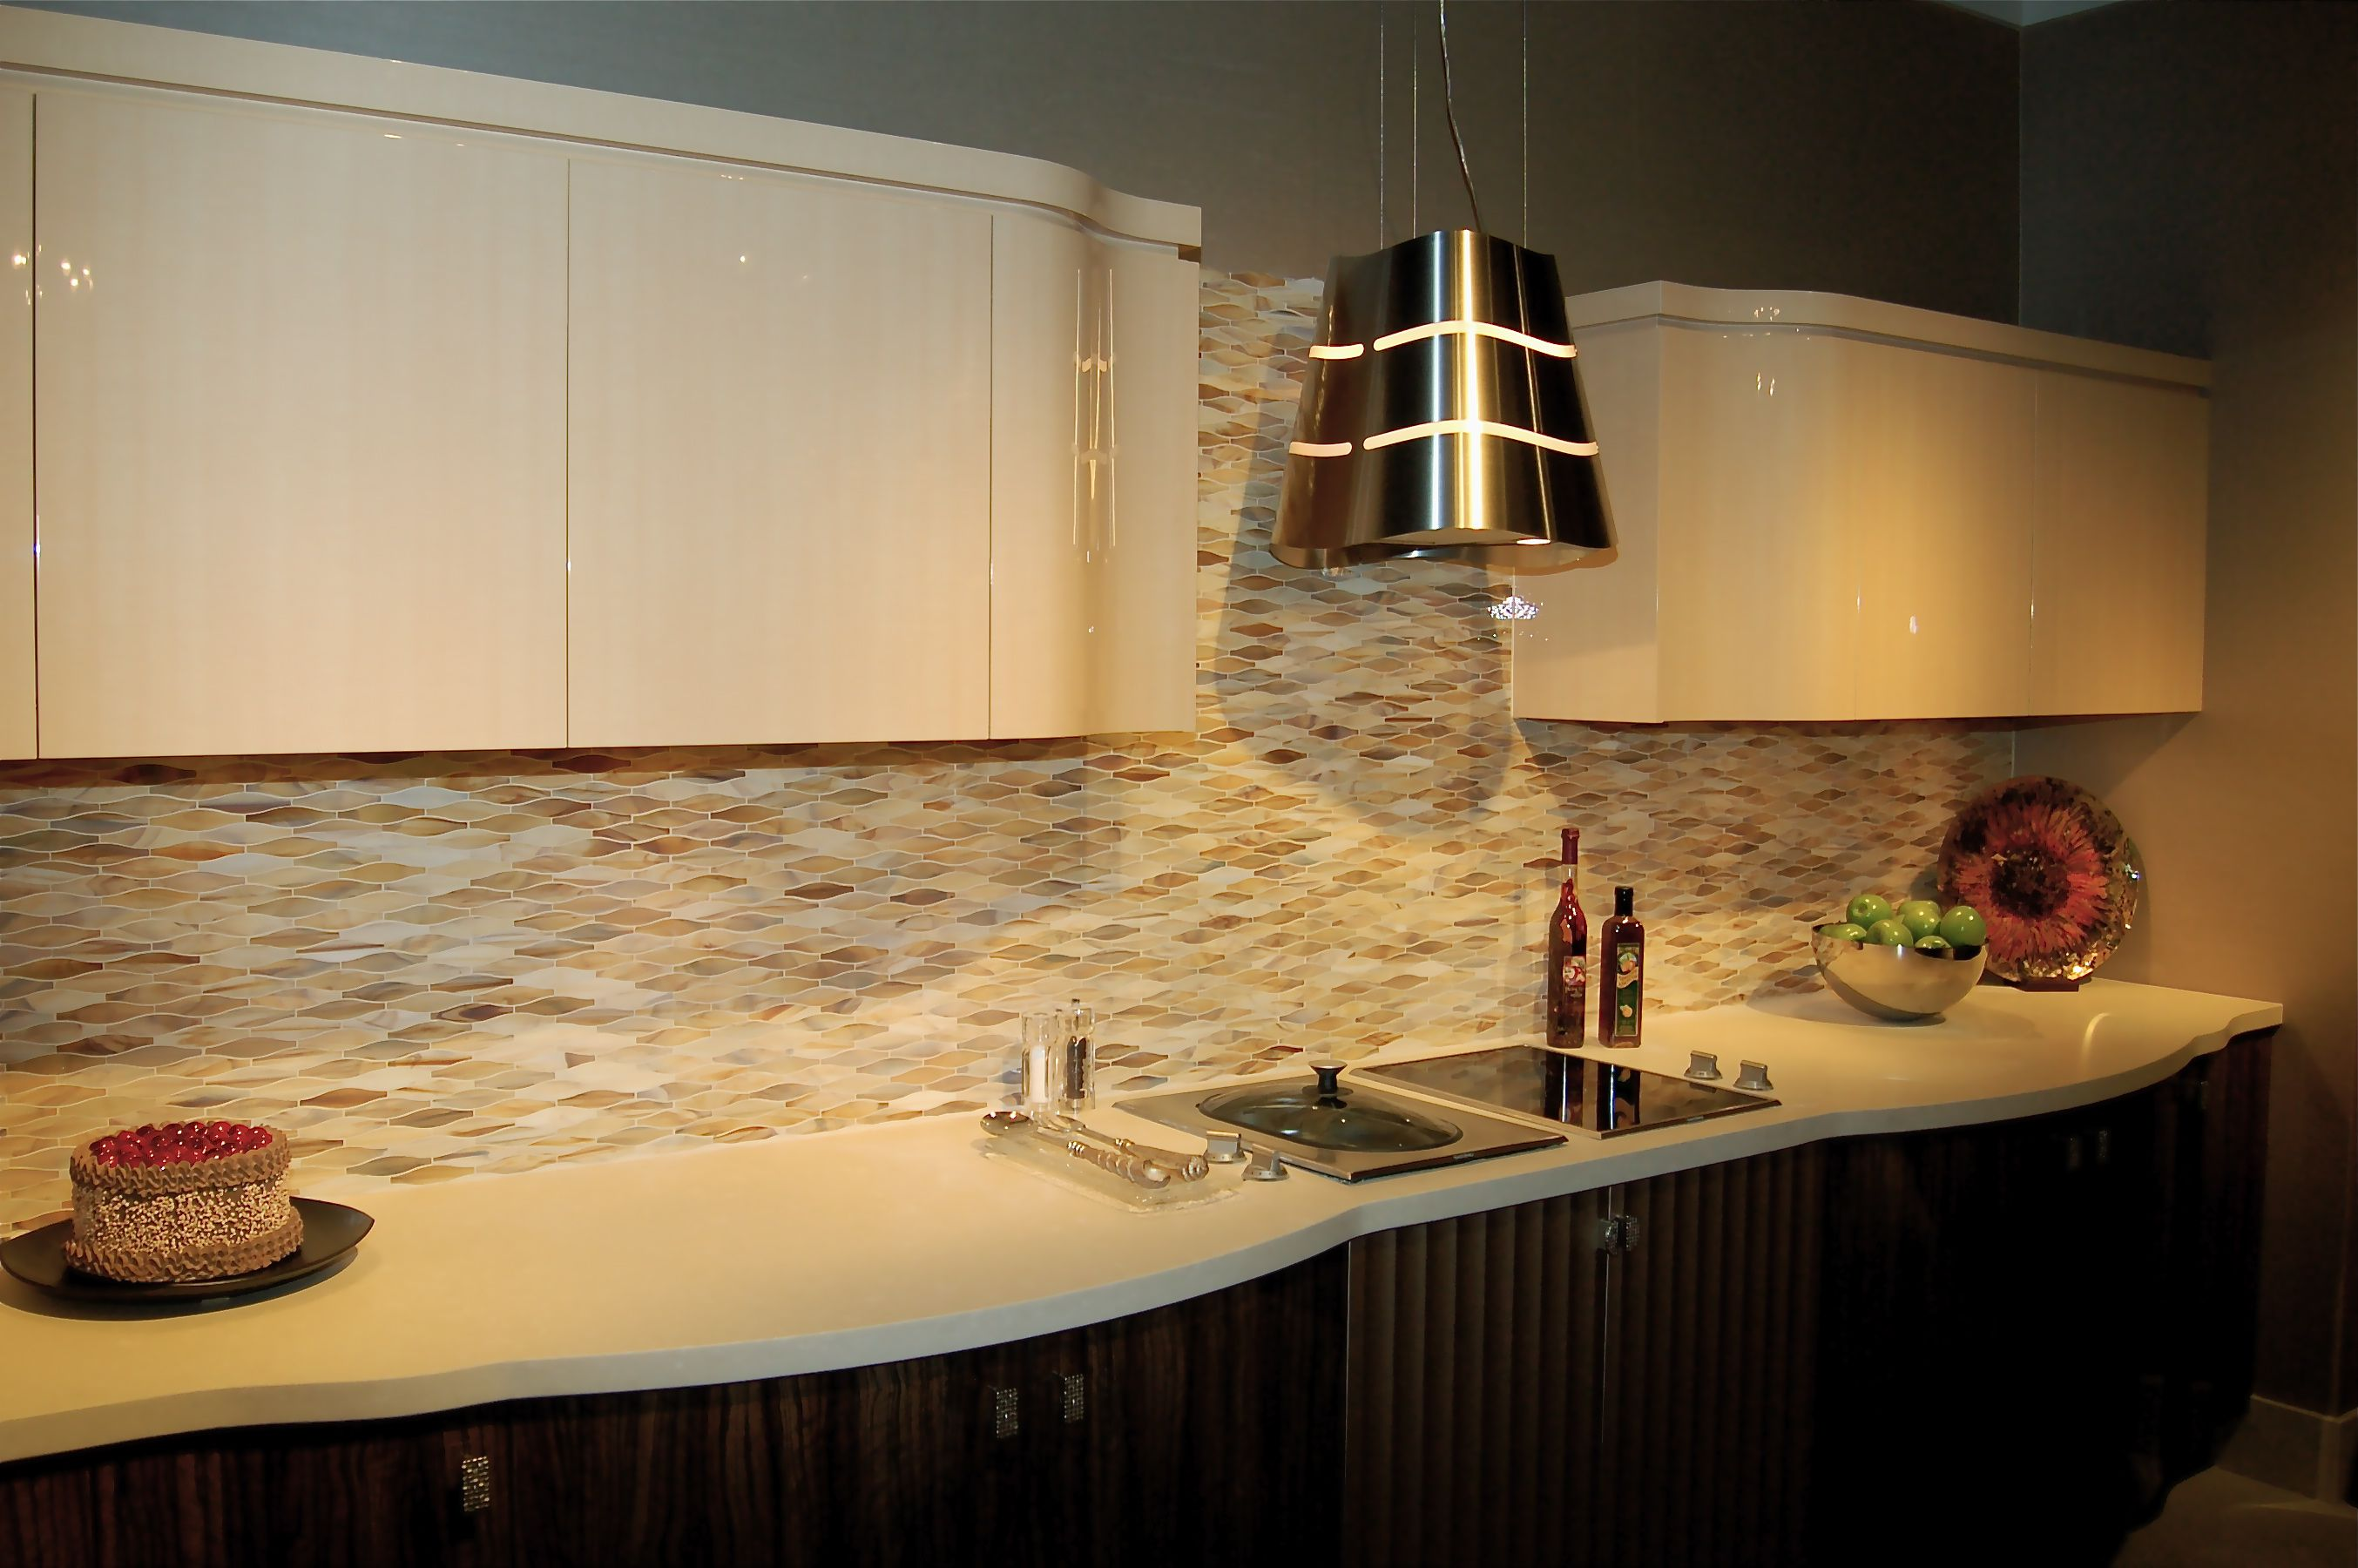 Best Kitchen Backsplash Ideas With Stunning Colors And Pattern To Meet  Glossy White Upper Cabinet